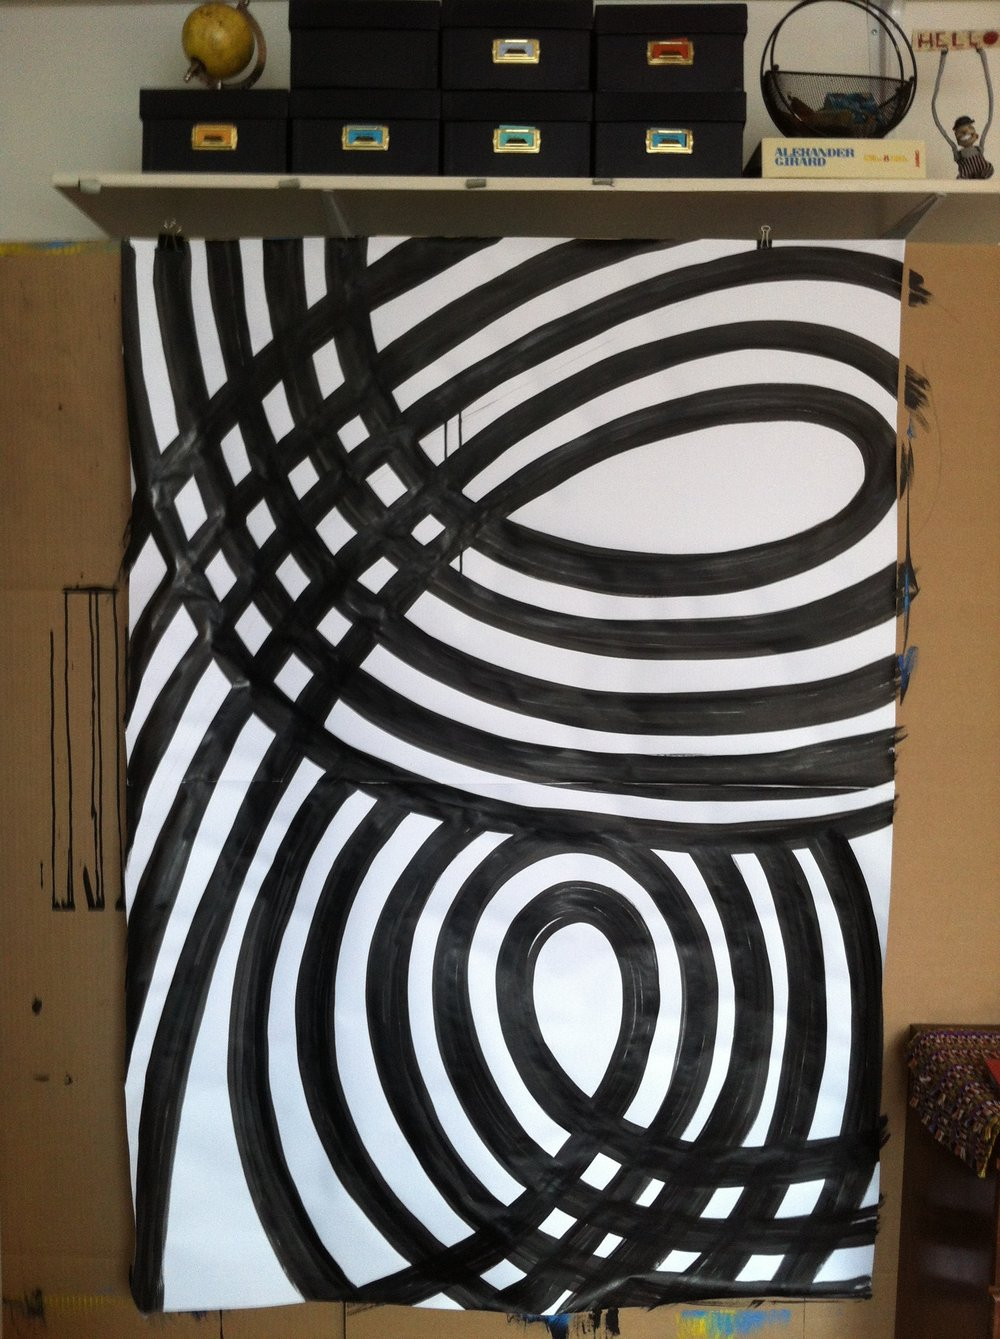 12. Ink on paper: Large 40x55in